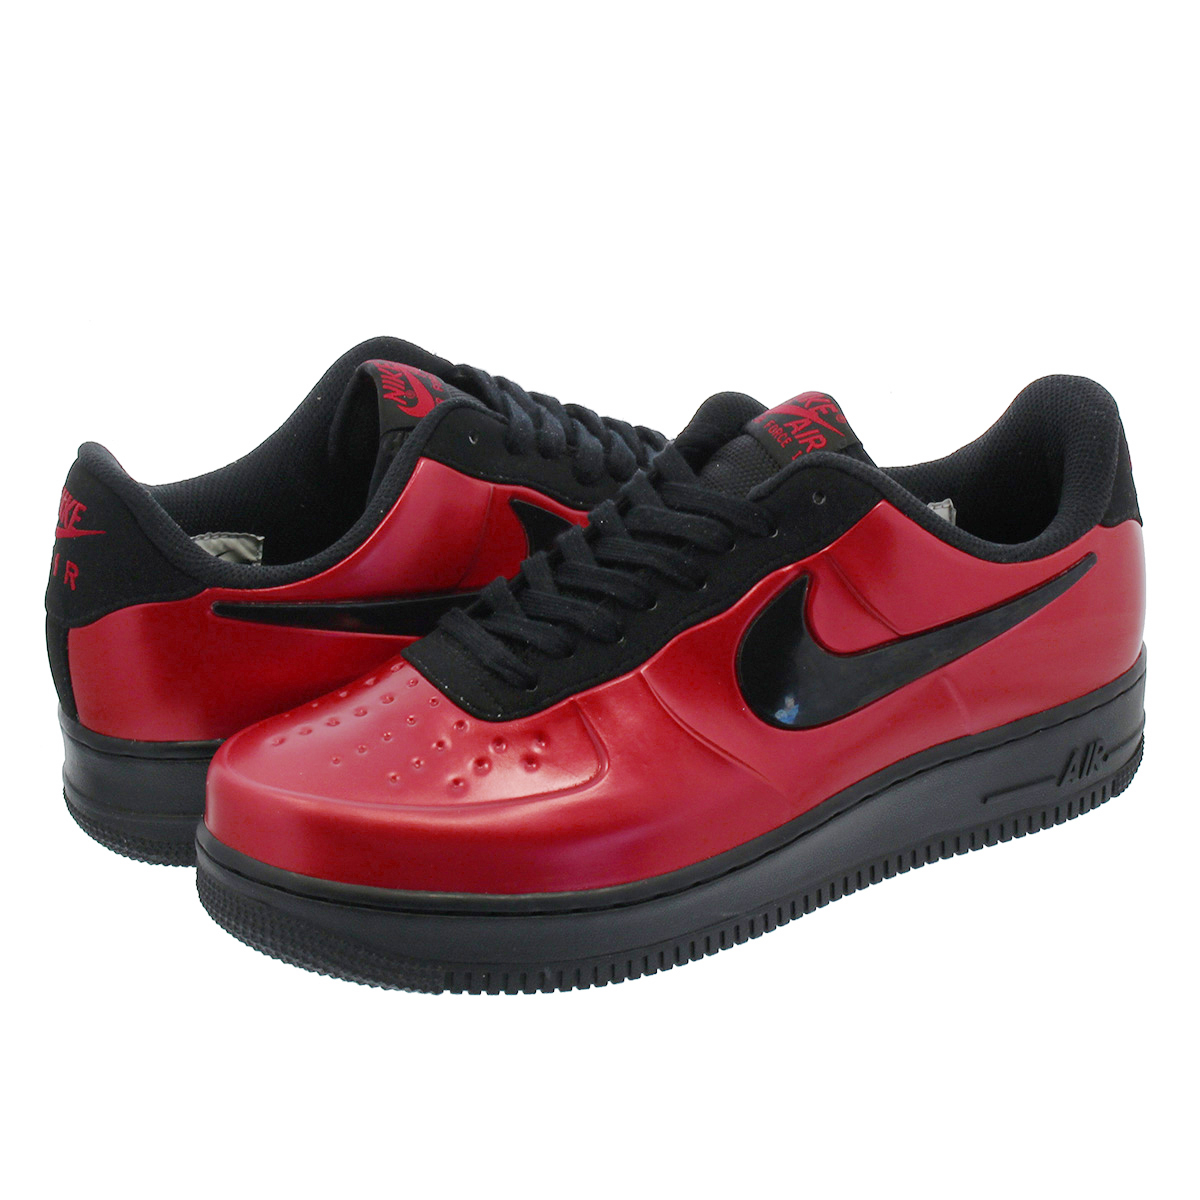 0b1e29d18dc ... germany nike air force 1 foamposite pro cup nike air force 1 gym red  black aj3664